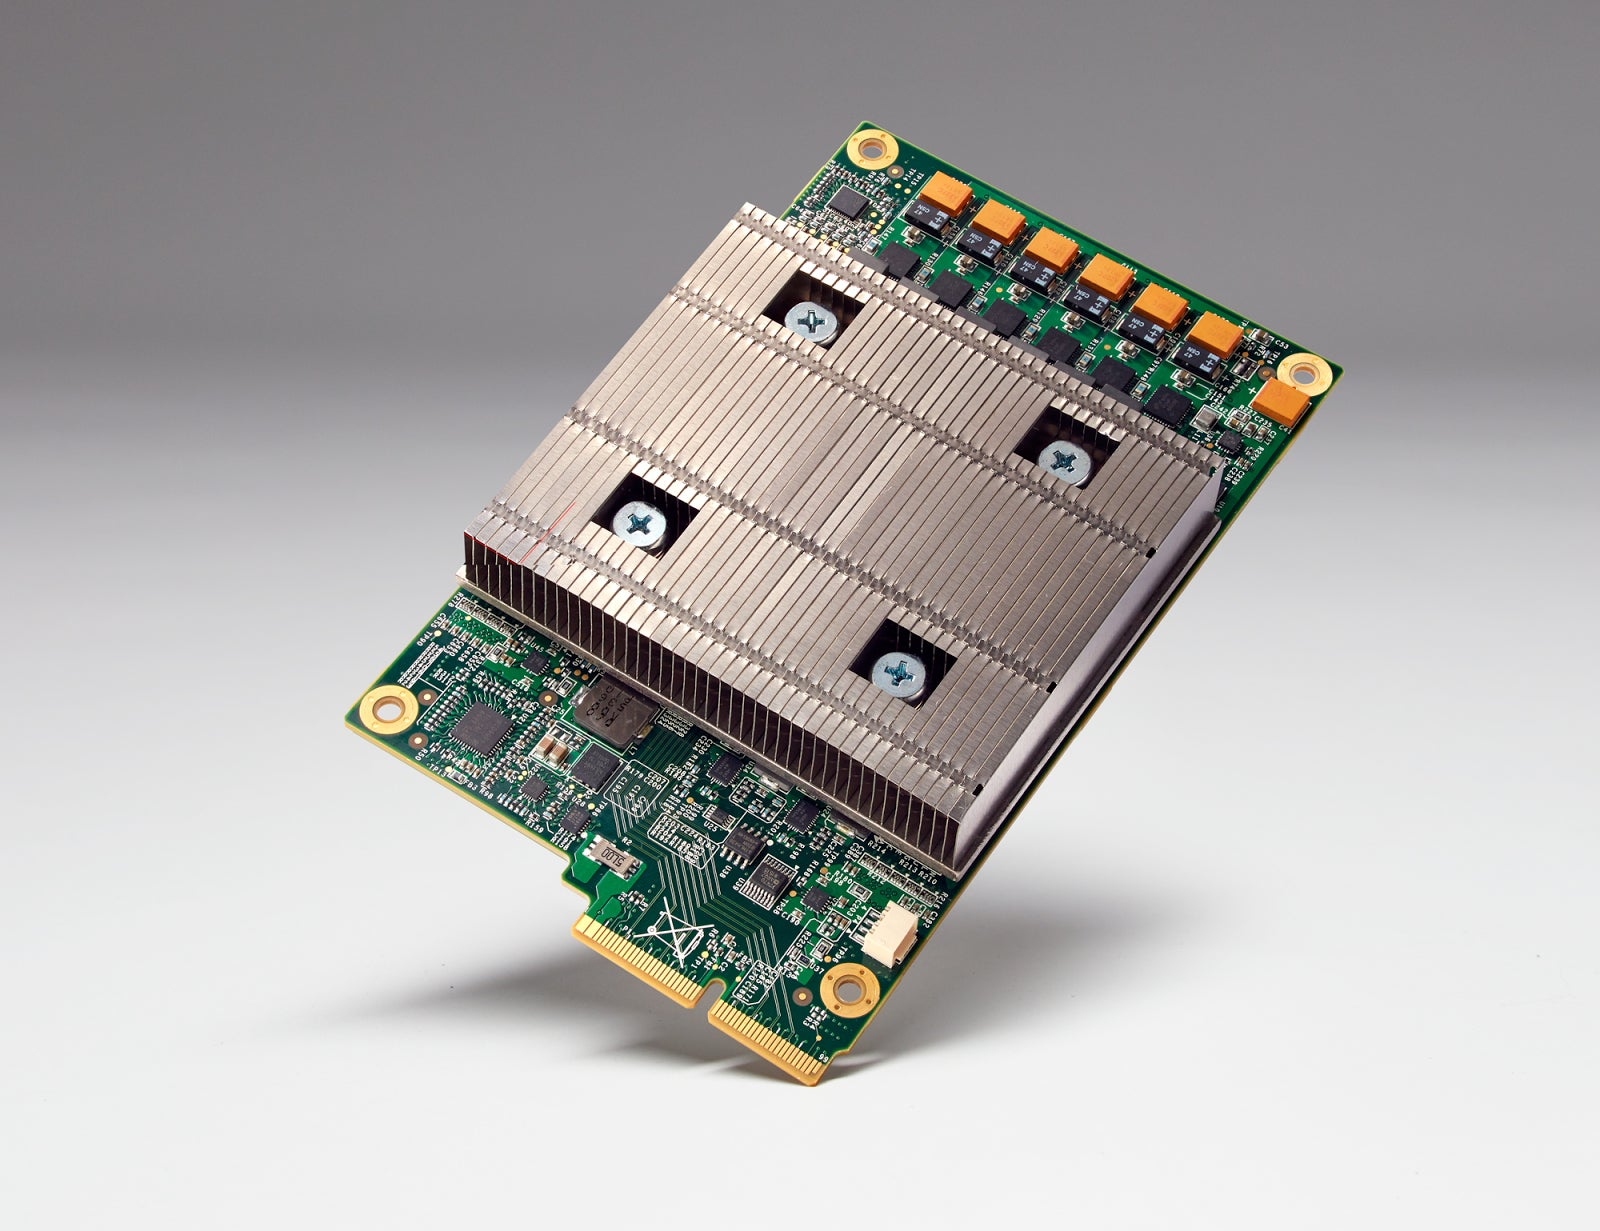 Googles Tensor Processing Unit Could Advance Moores Law 7 Years Electric Circuit Board Processor Tshirt Into The Future Pcworld